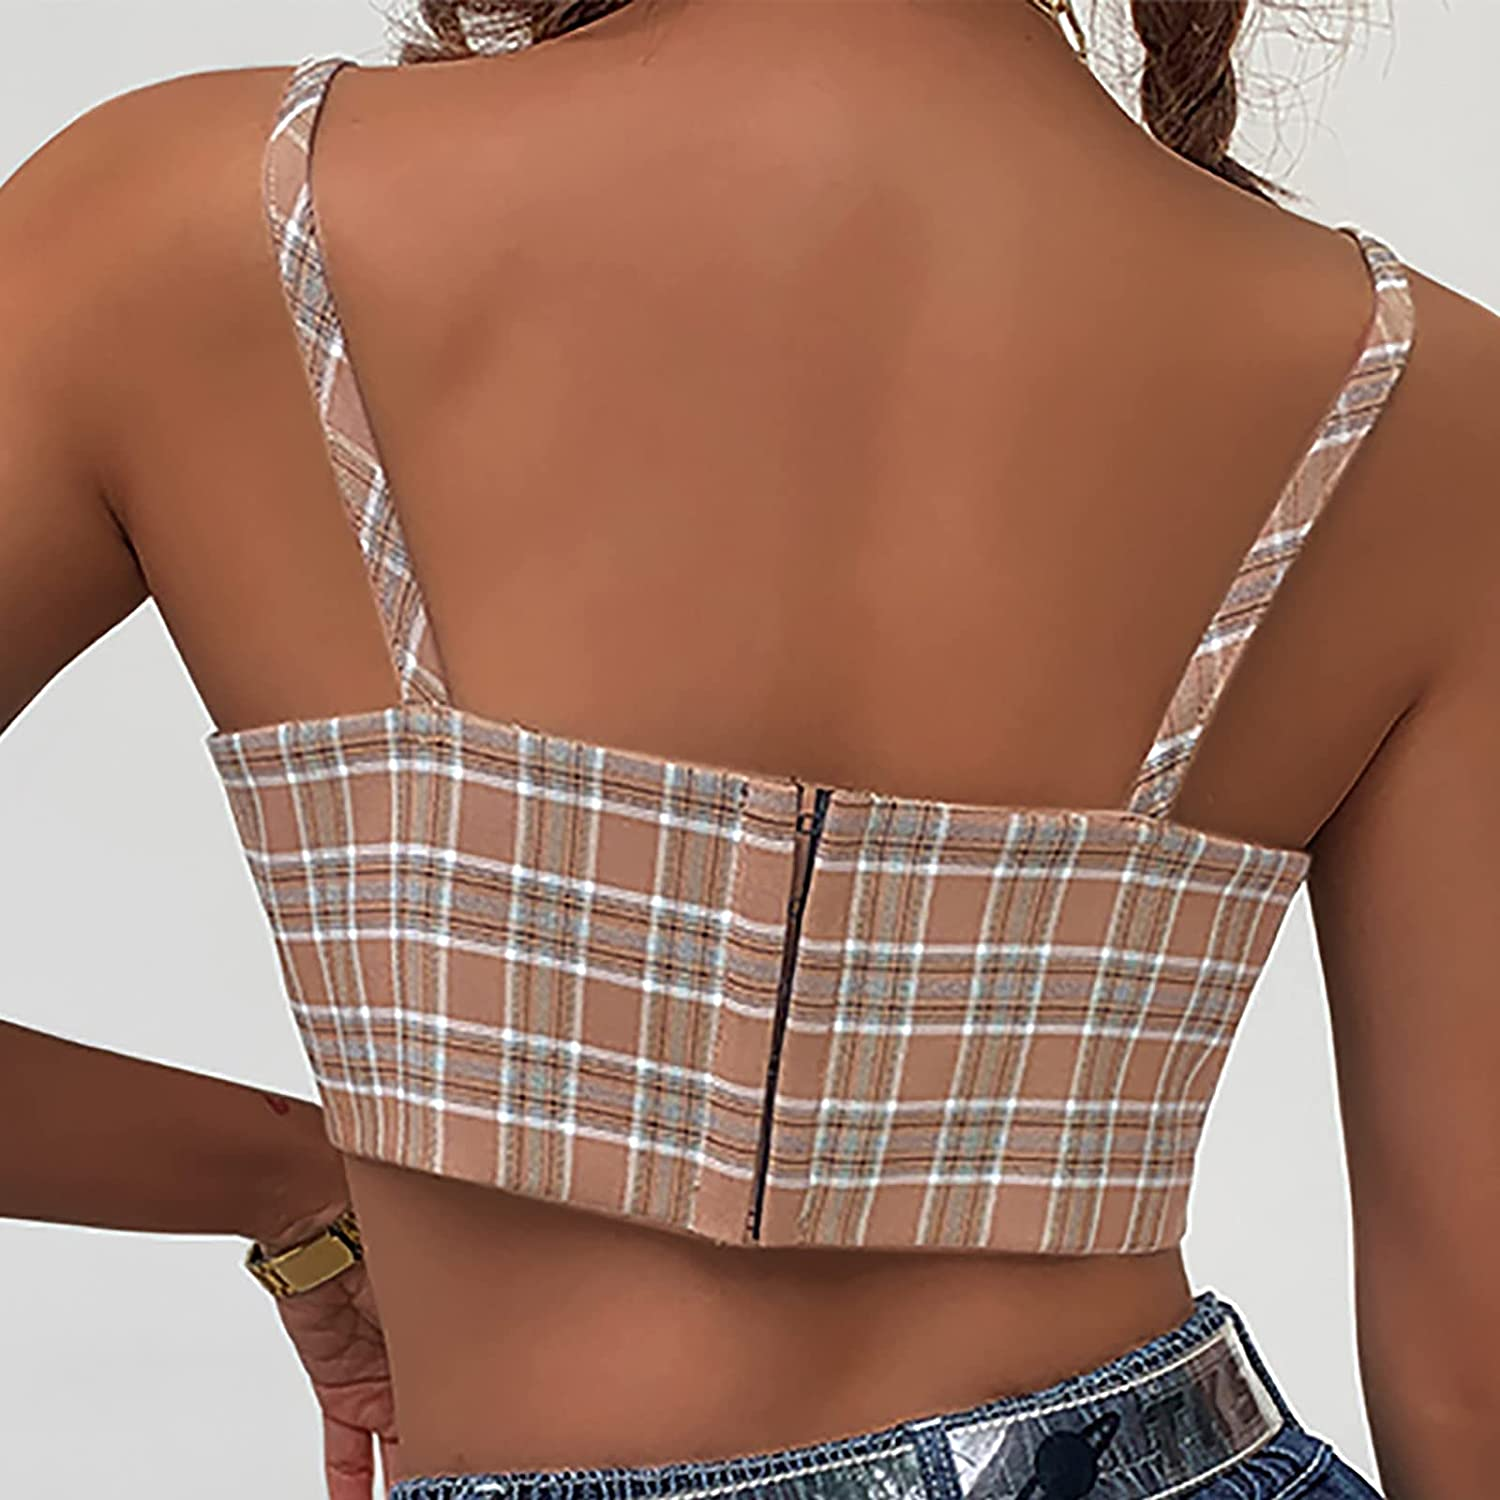 Fashion Women's Summer Casual Personalized Plaid Printing Tops Sling Vest Retro Small Love Suspenders Summer Short smal